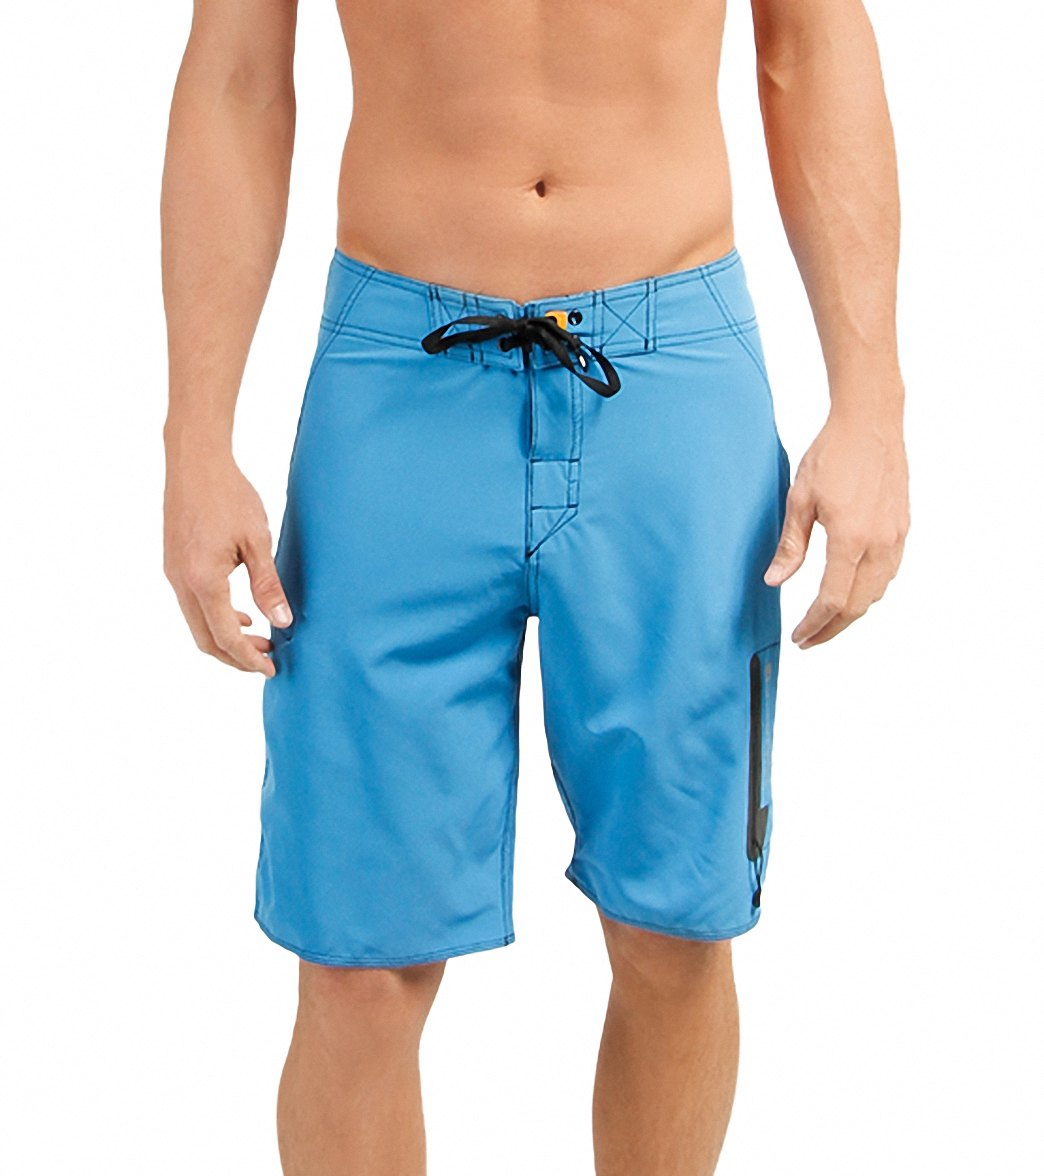 bb6ca064b9 Quiksilver Waterman's Paddler 2 Boardshort at SwimOutlet.com - Free Shipping